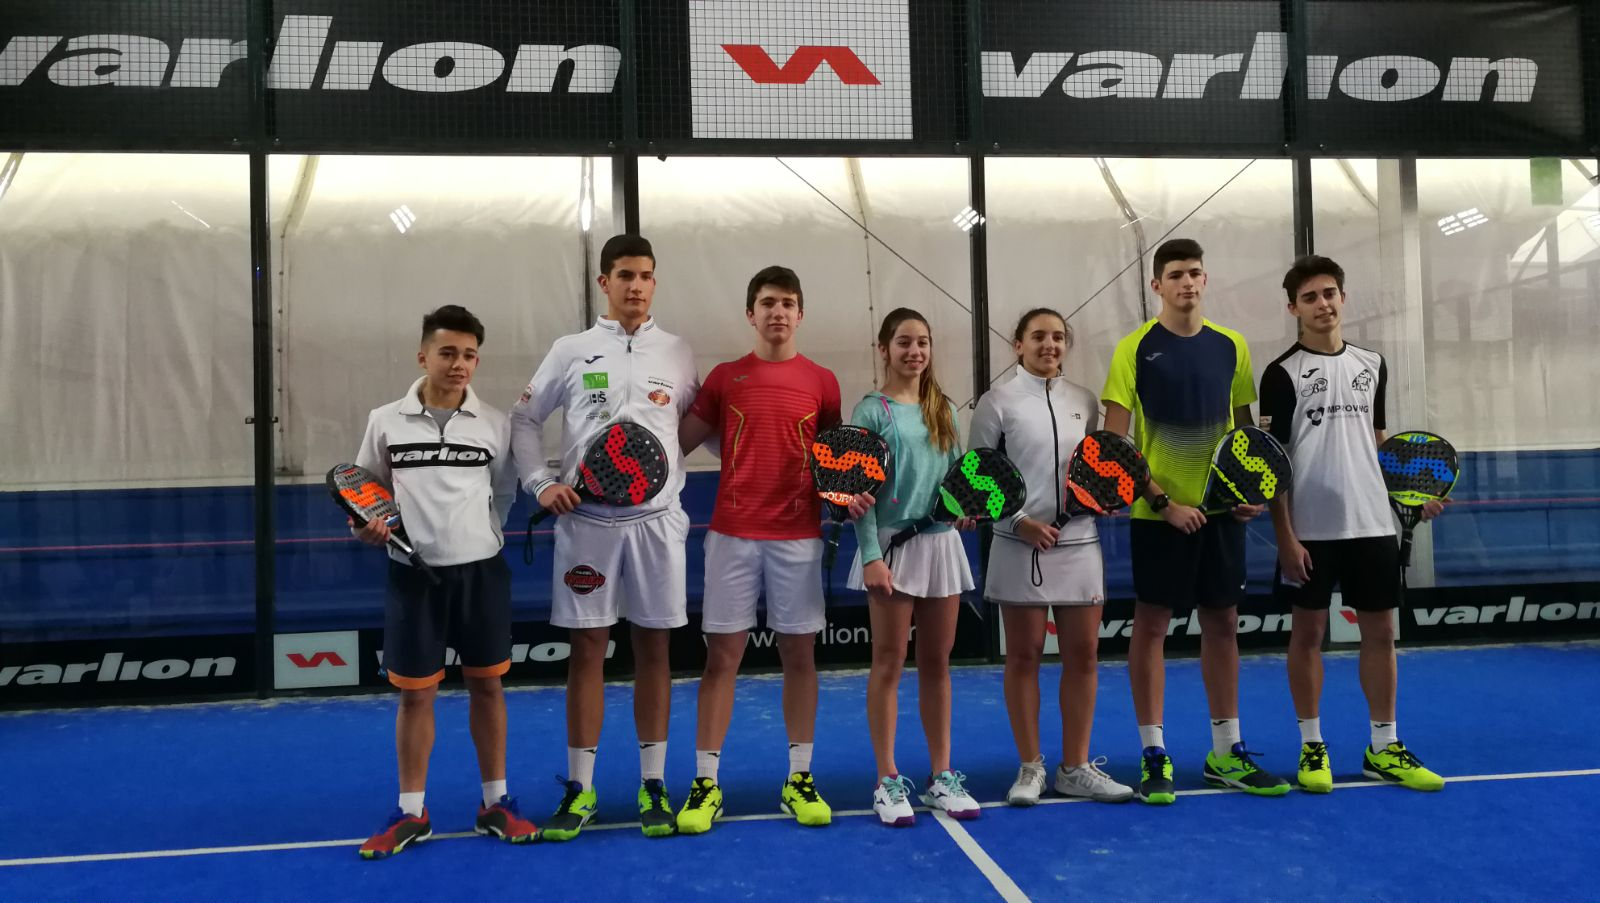 Varlion Junior Team